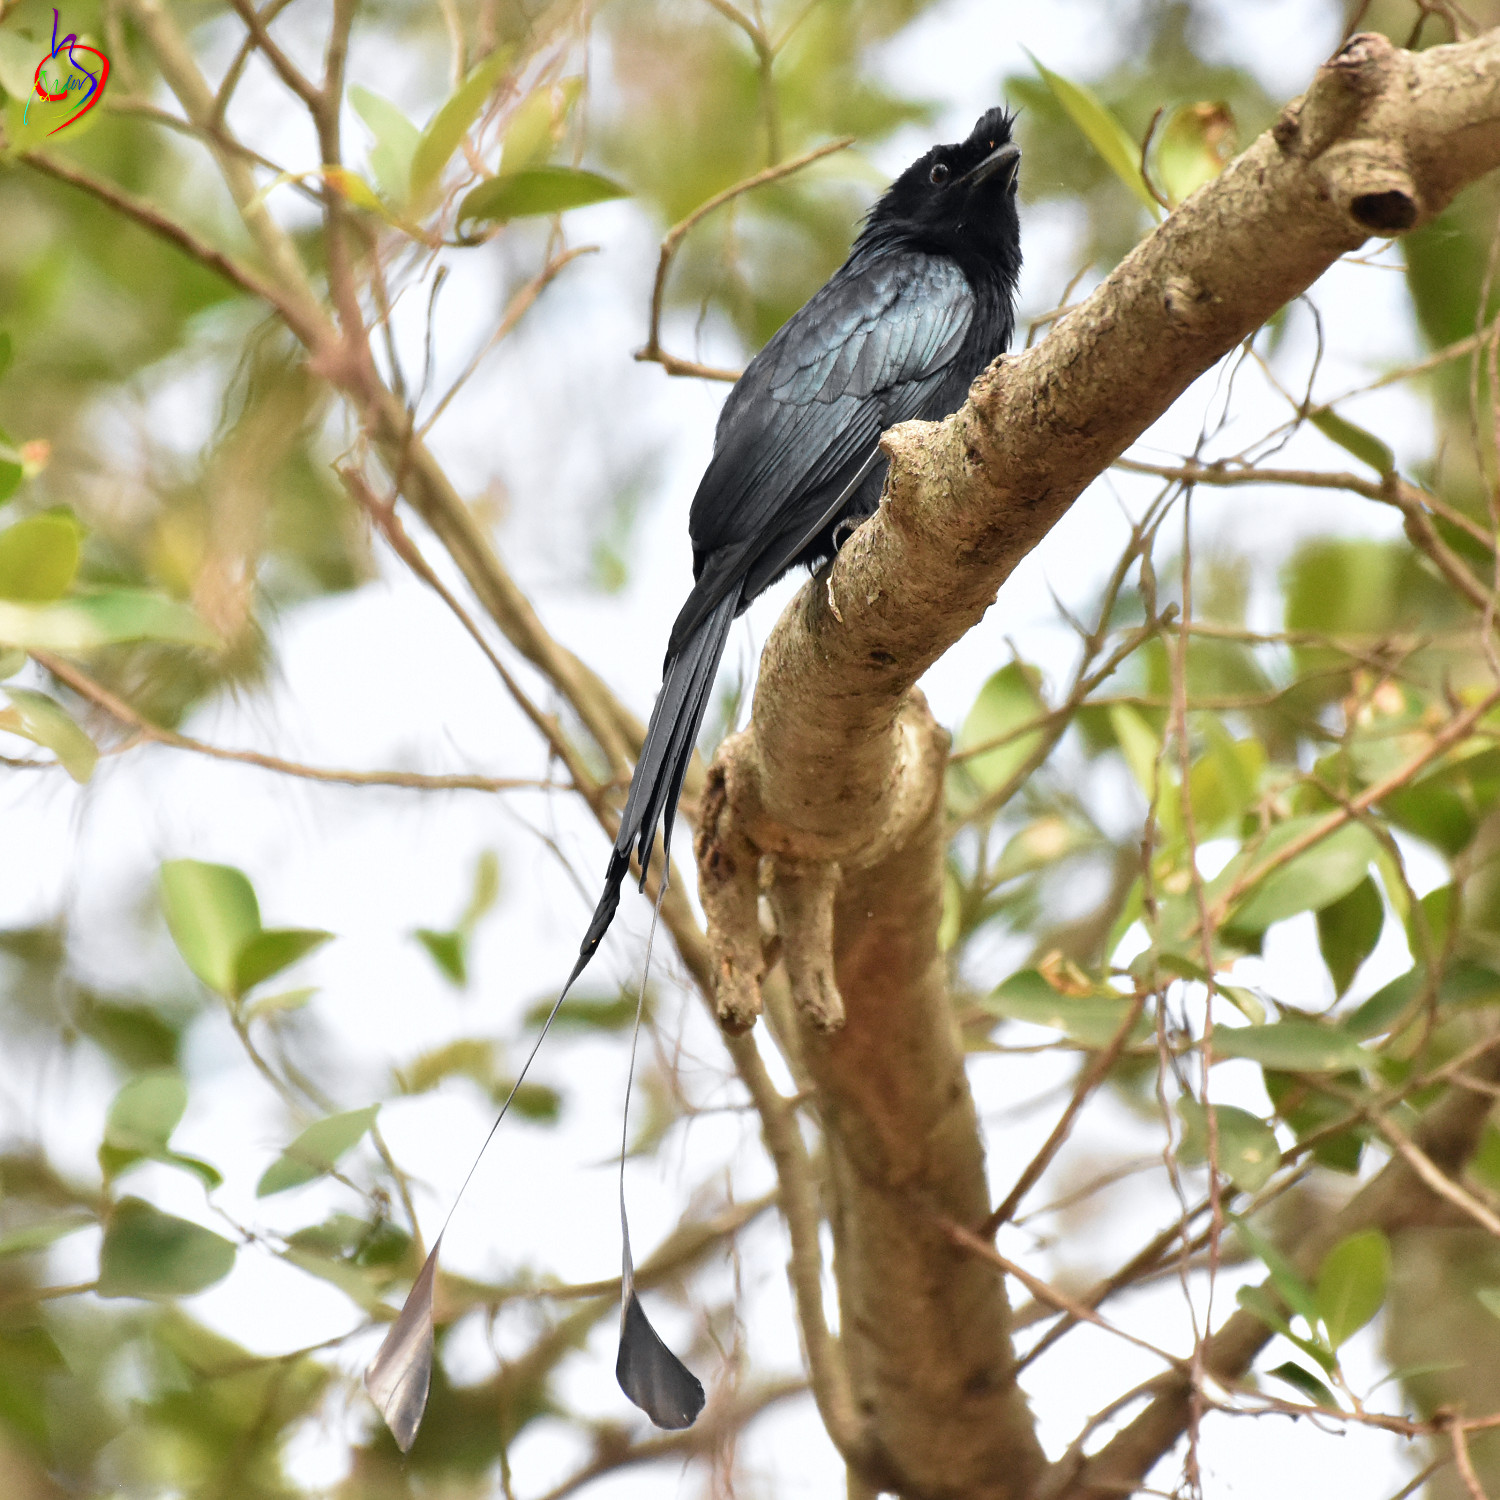 Greater_Racket-tailed_Drongo_3488